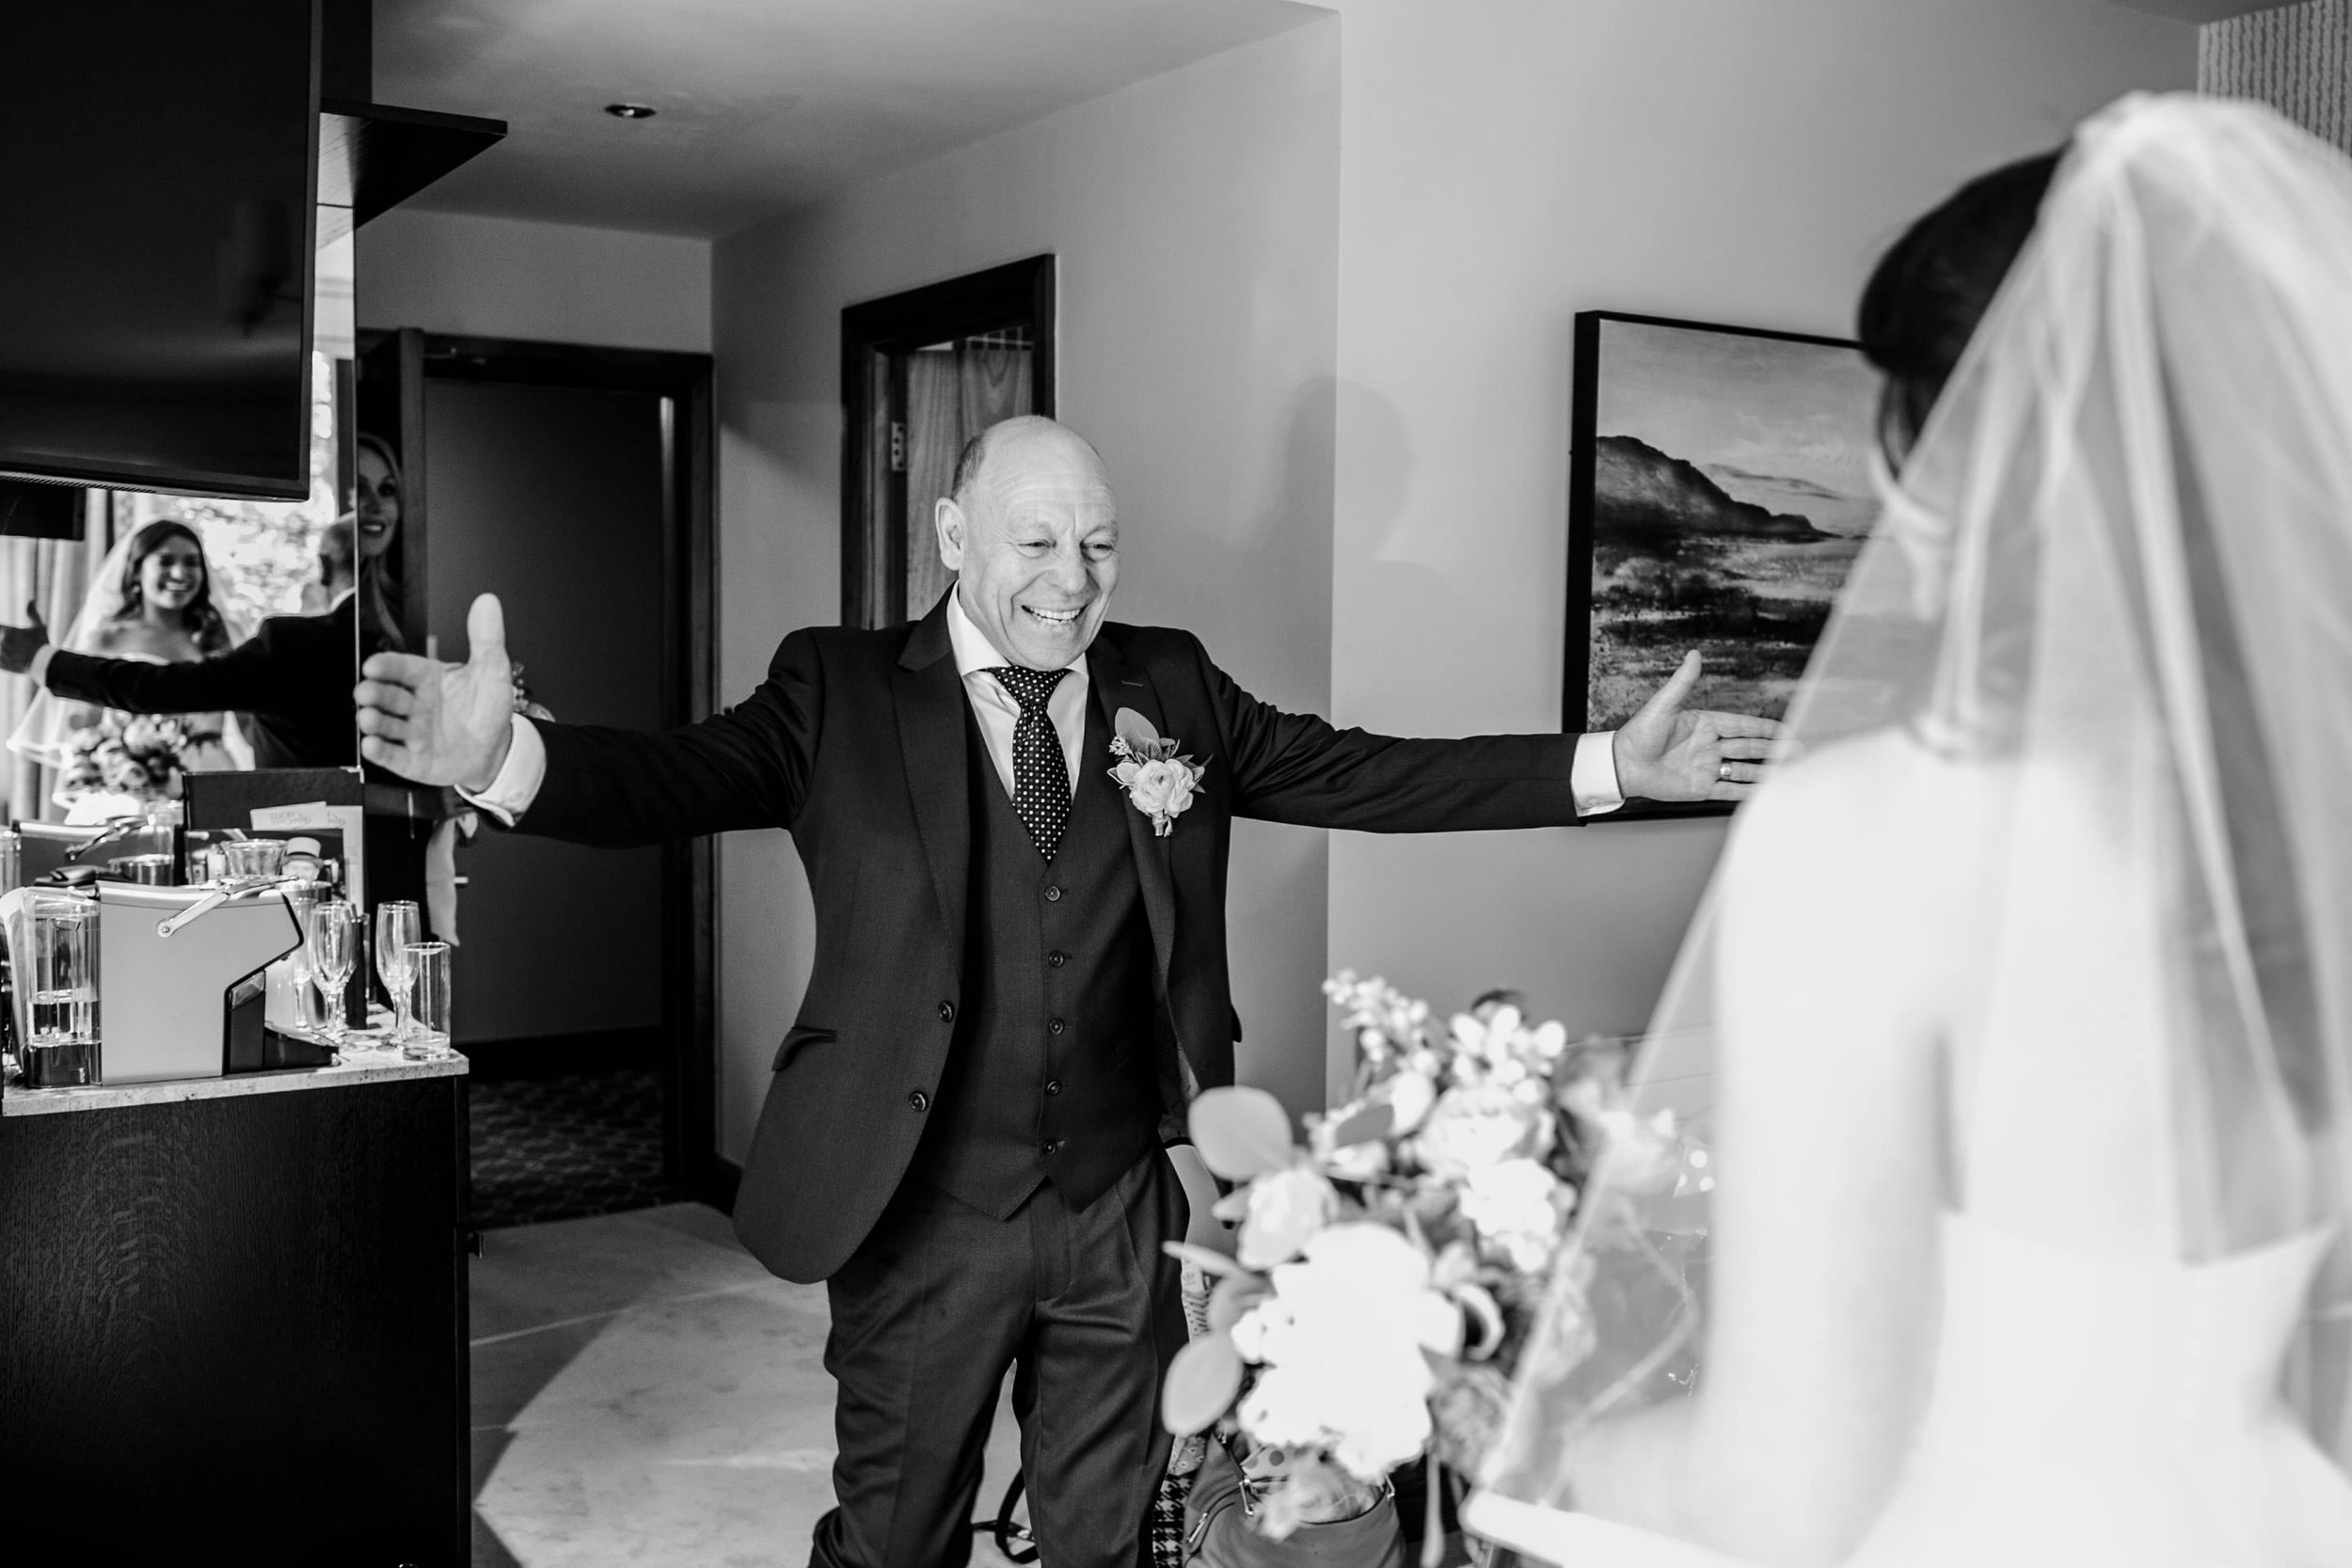 luxury_wedding_bellinter_house_photographer_livia_figueiredo_4.jpg